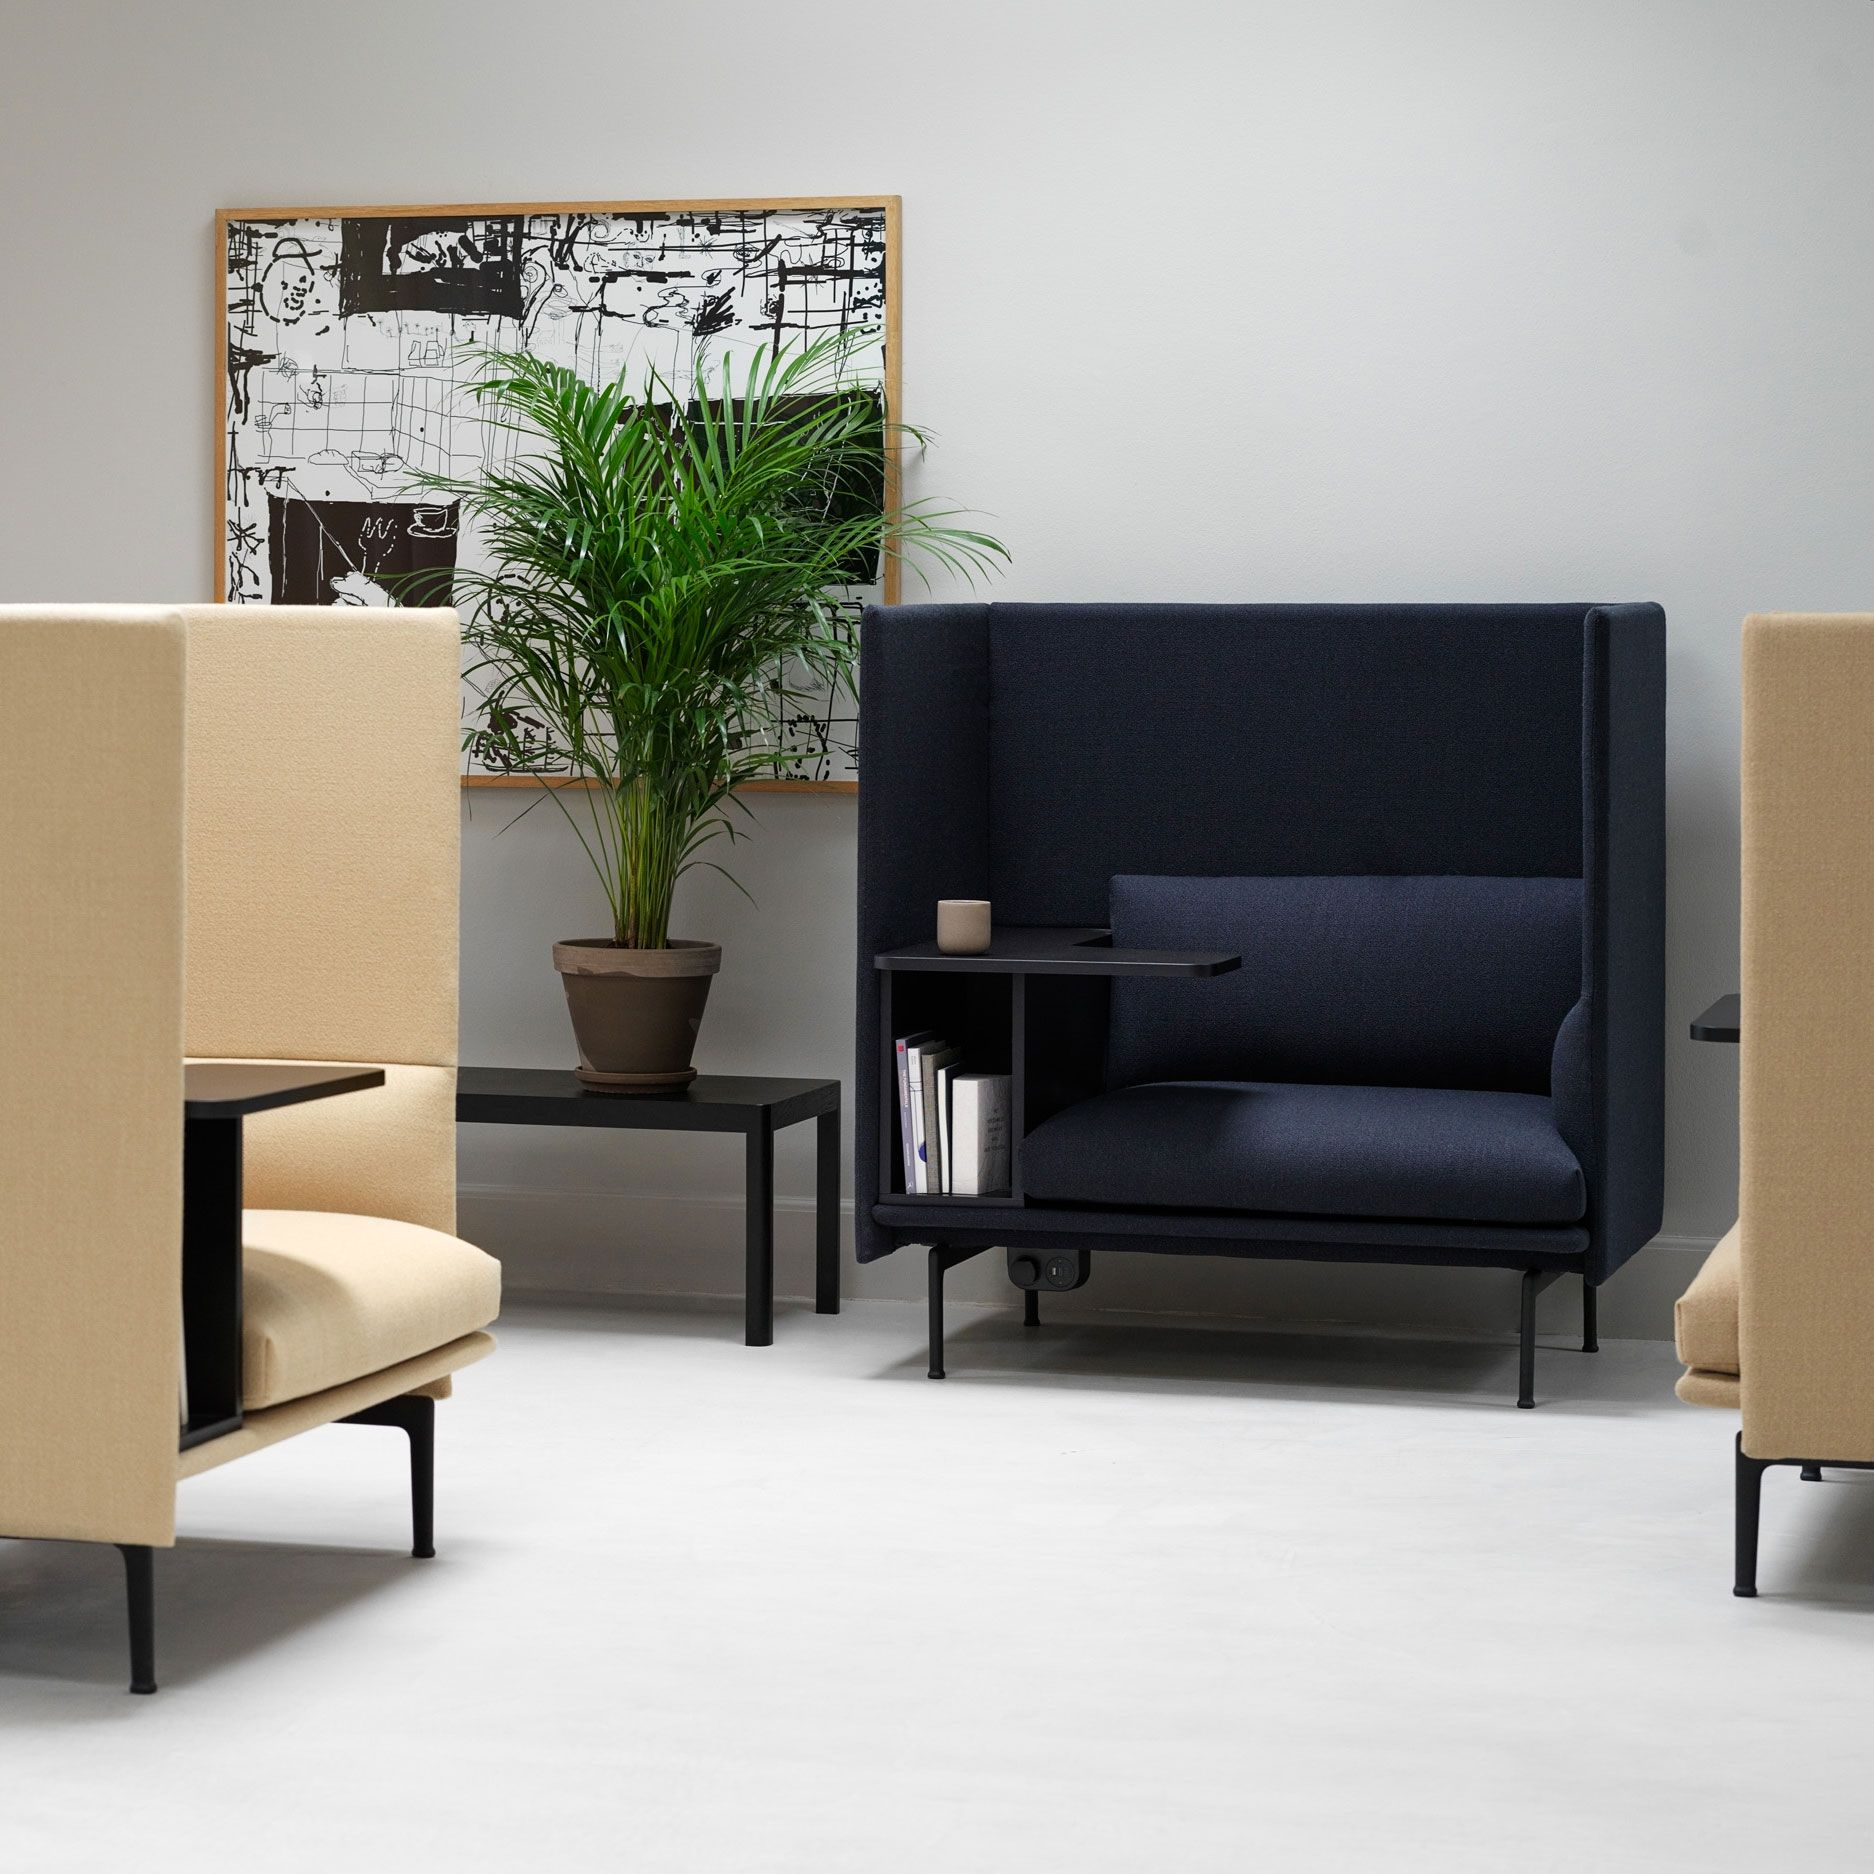 Functional And Comfortable Office Sofa Interior Inspiration From Muuto The Outline H Scandinavian Sofa Design Scandinavian Furniture Design Office Space Decor